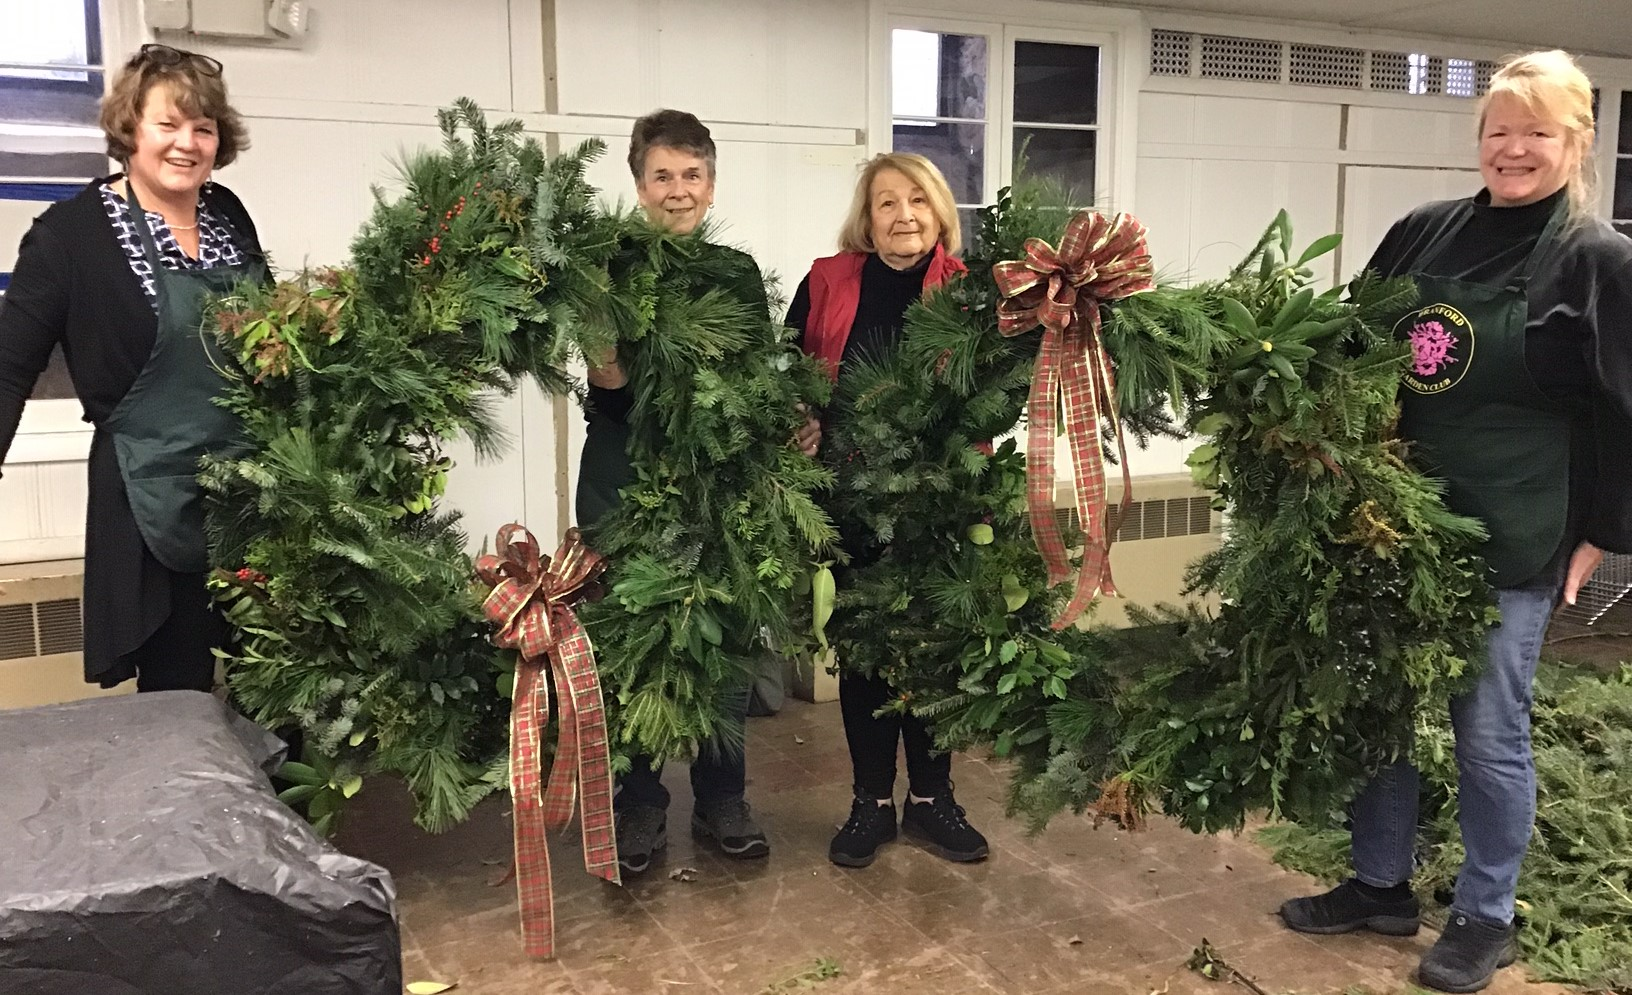 Making the yearly wreaths for the library